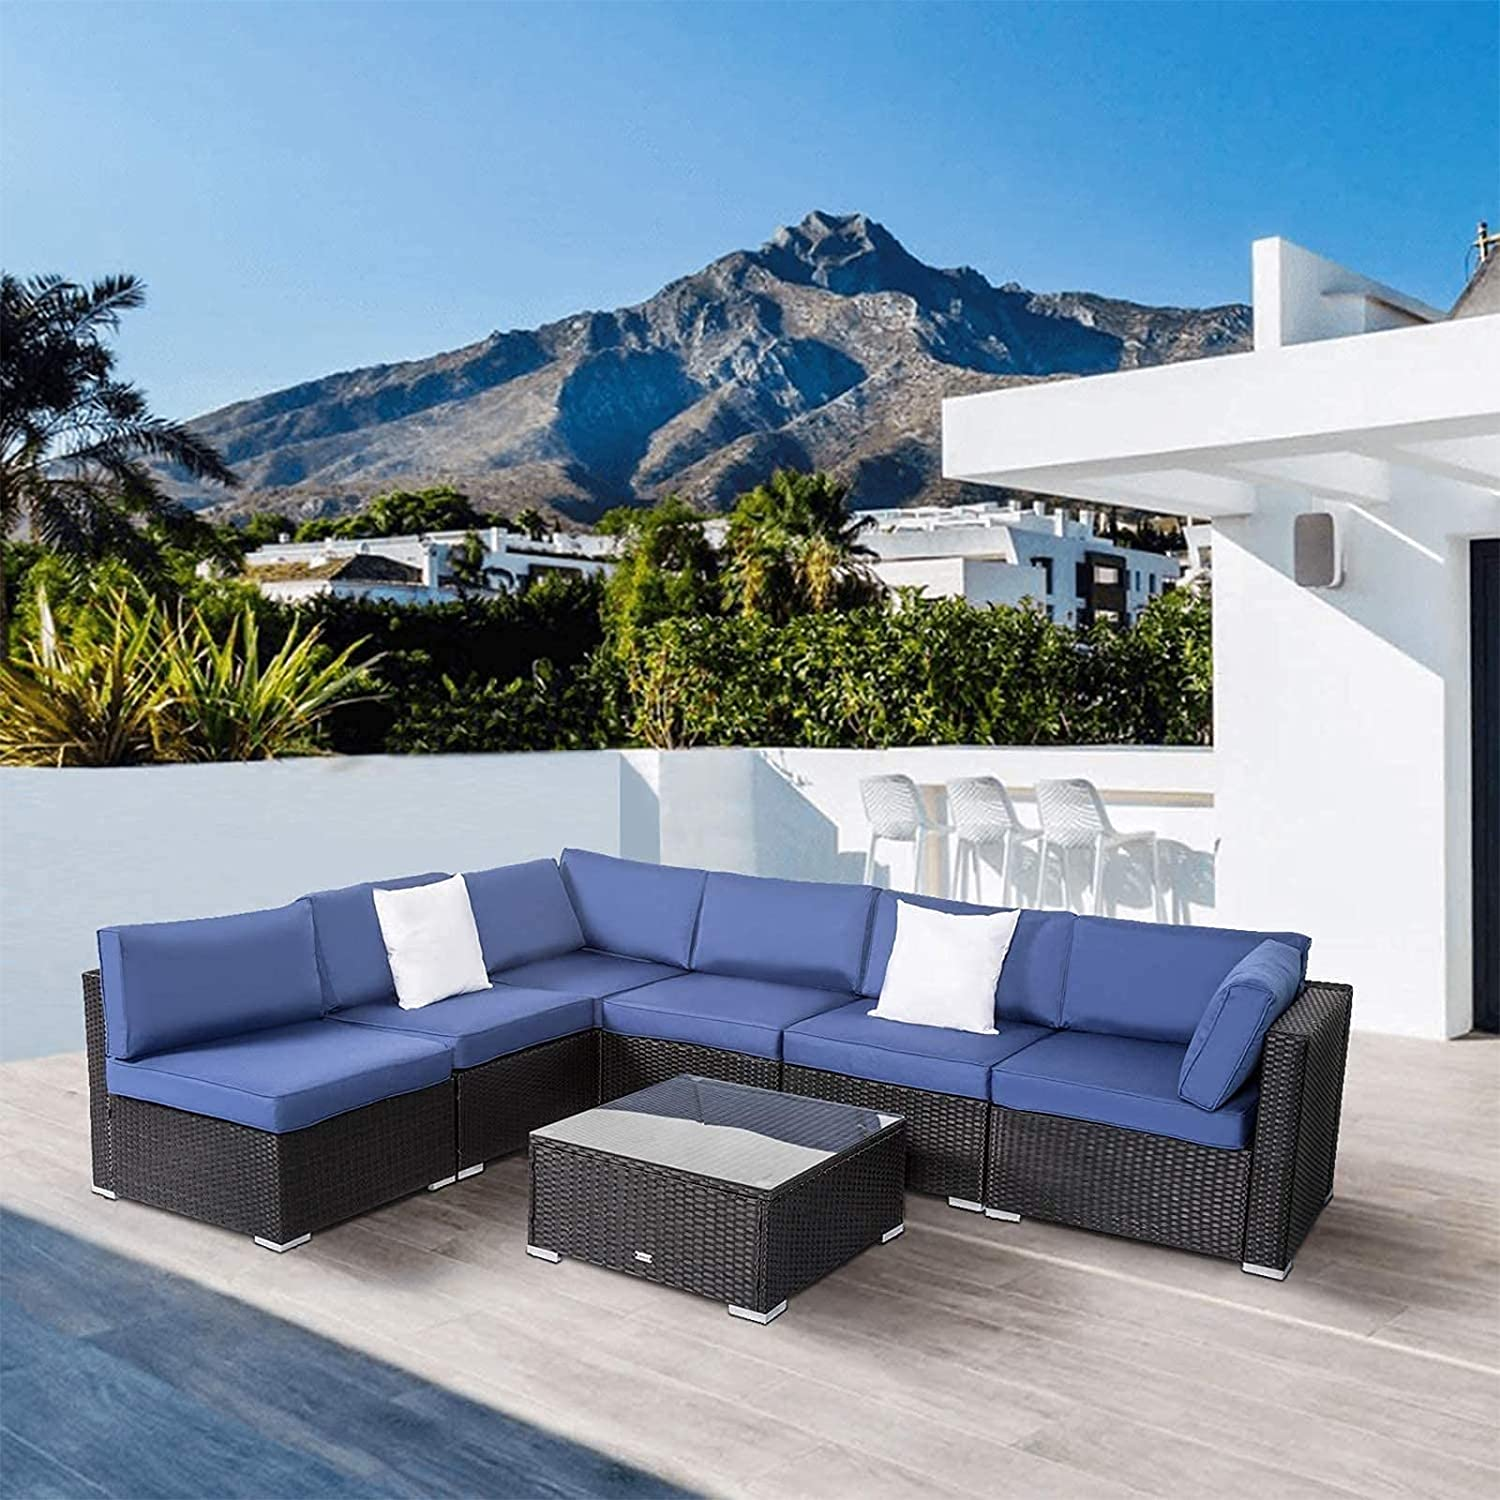 Buy Peach Tree Outdoor Furniture All Weather Sectional Wicker Sofa ...